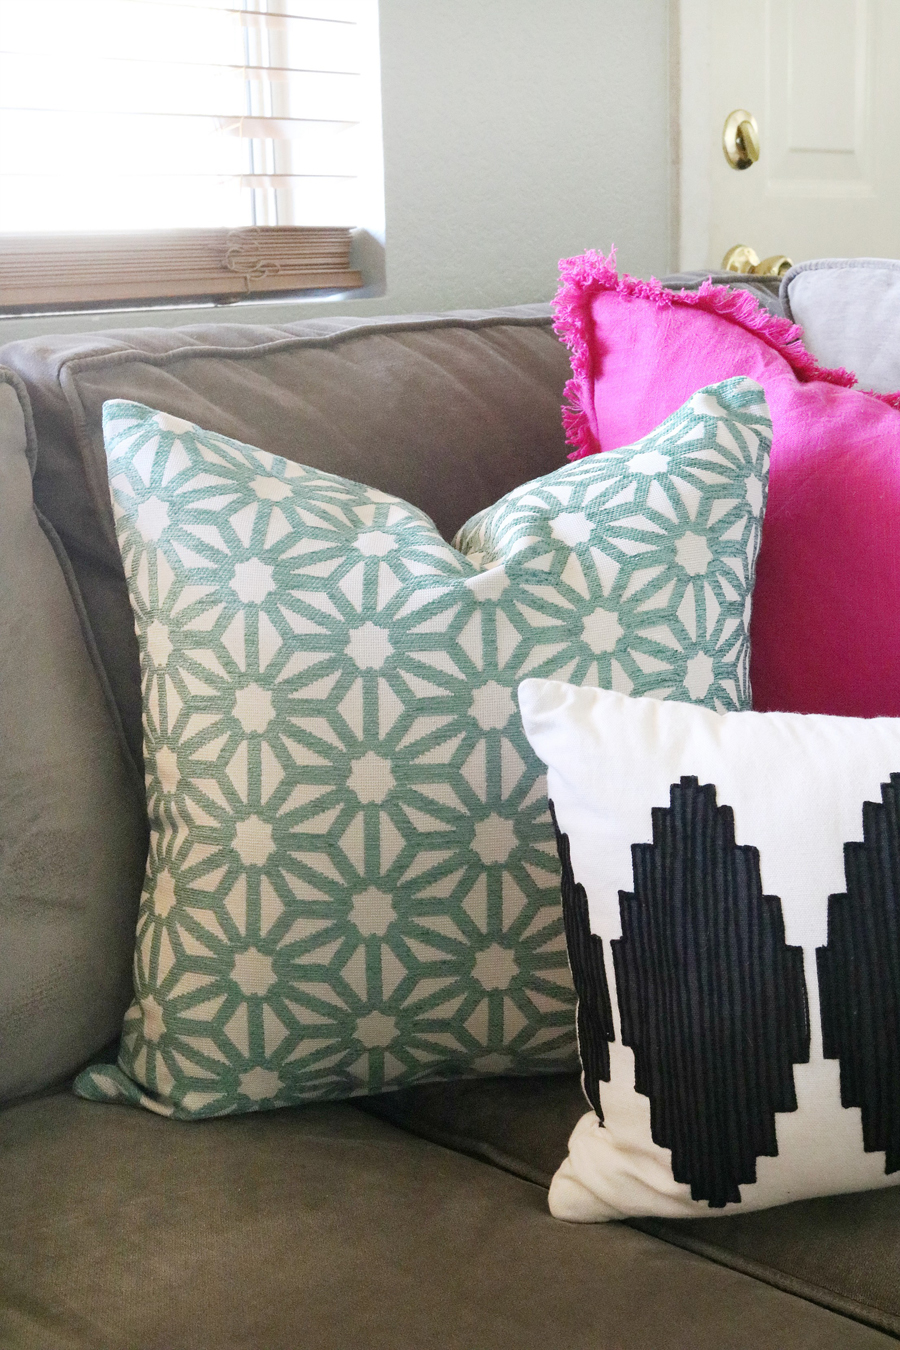 Family Room Refresh - BHGLiveBetter Throw Pillow from Walmart